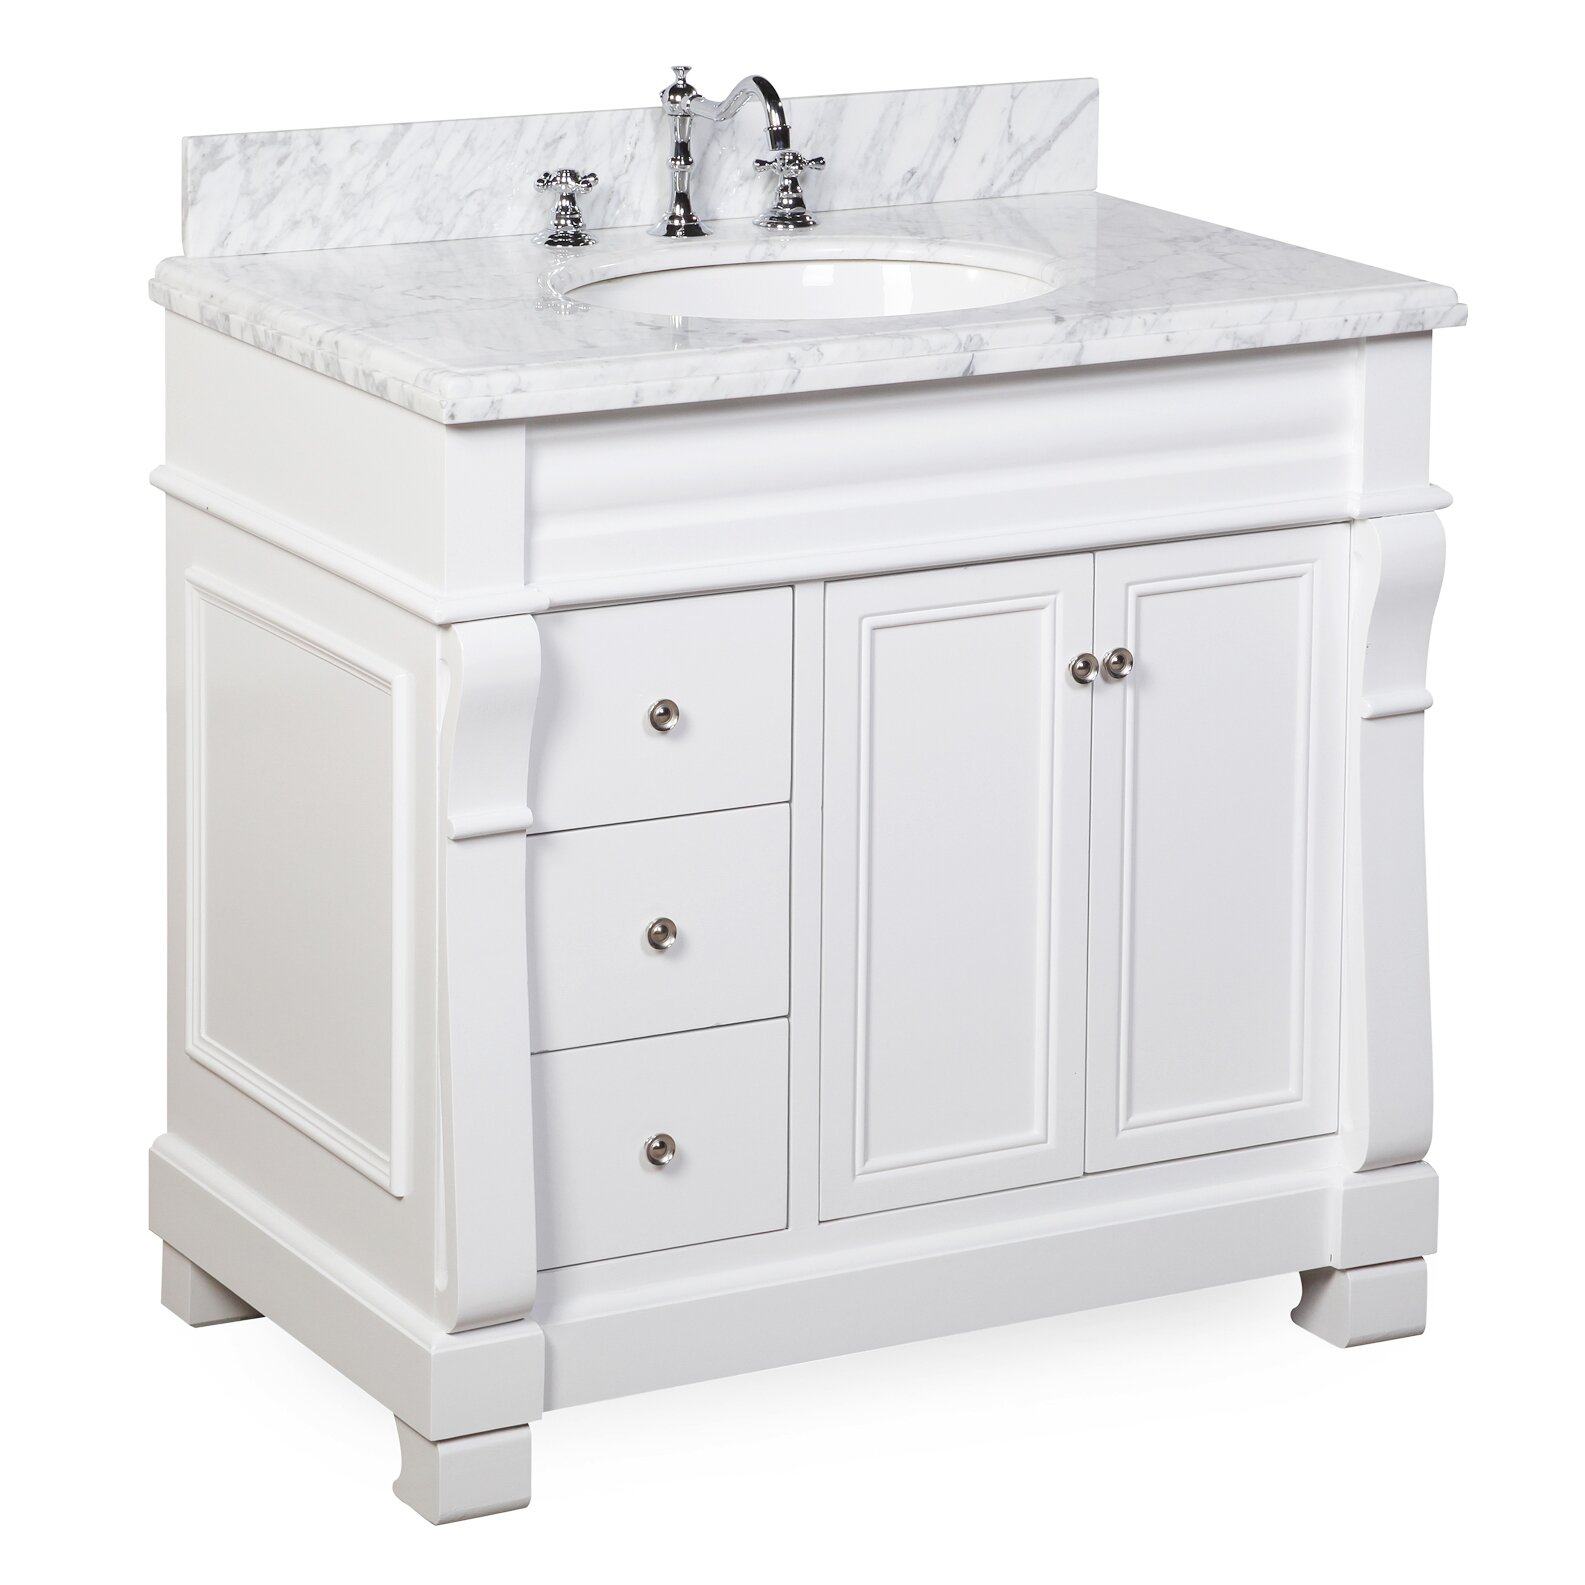 Kbc westminster 36 single bathroom vanity set reviews for Bath and vanity set